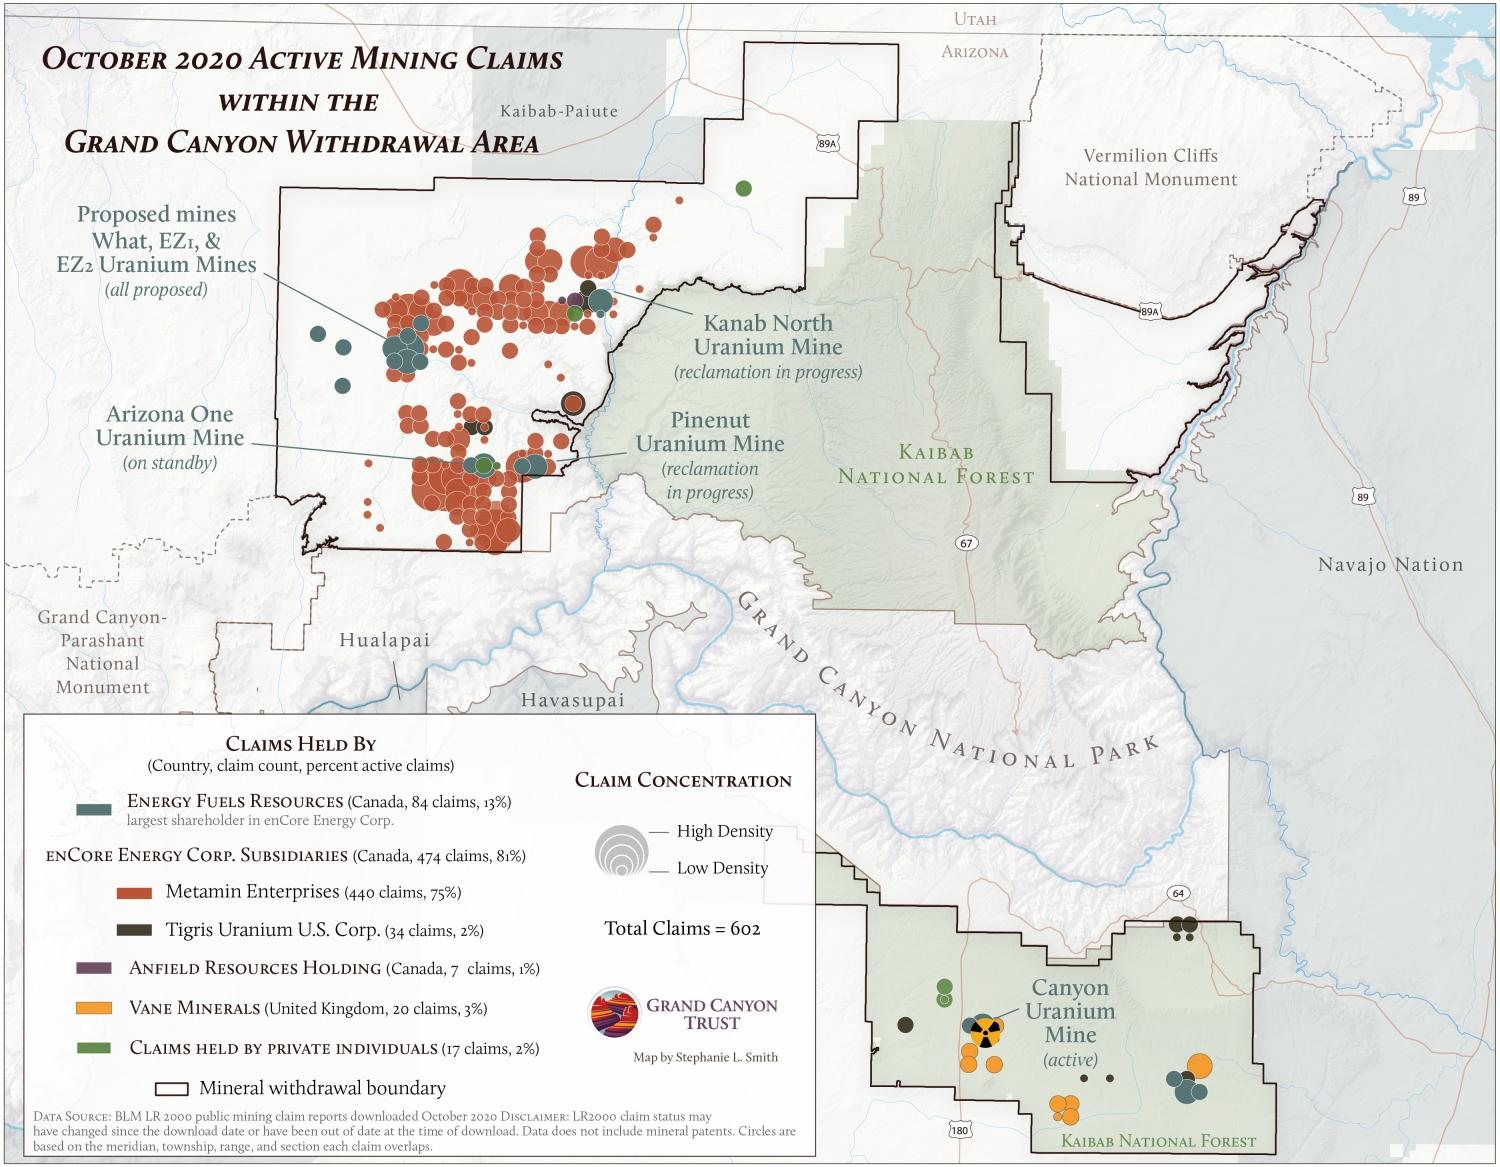 Active mining claims within the Grand Canyon withdrawal area, October 2020